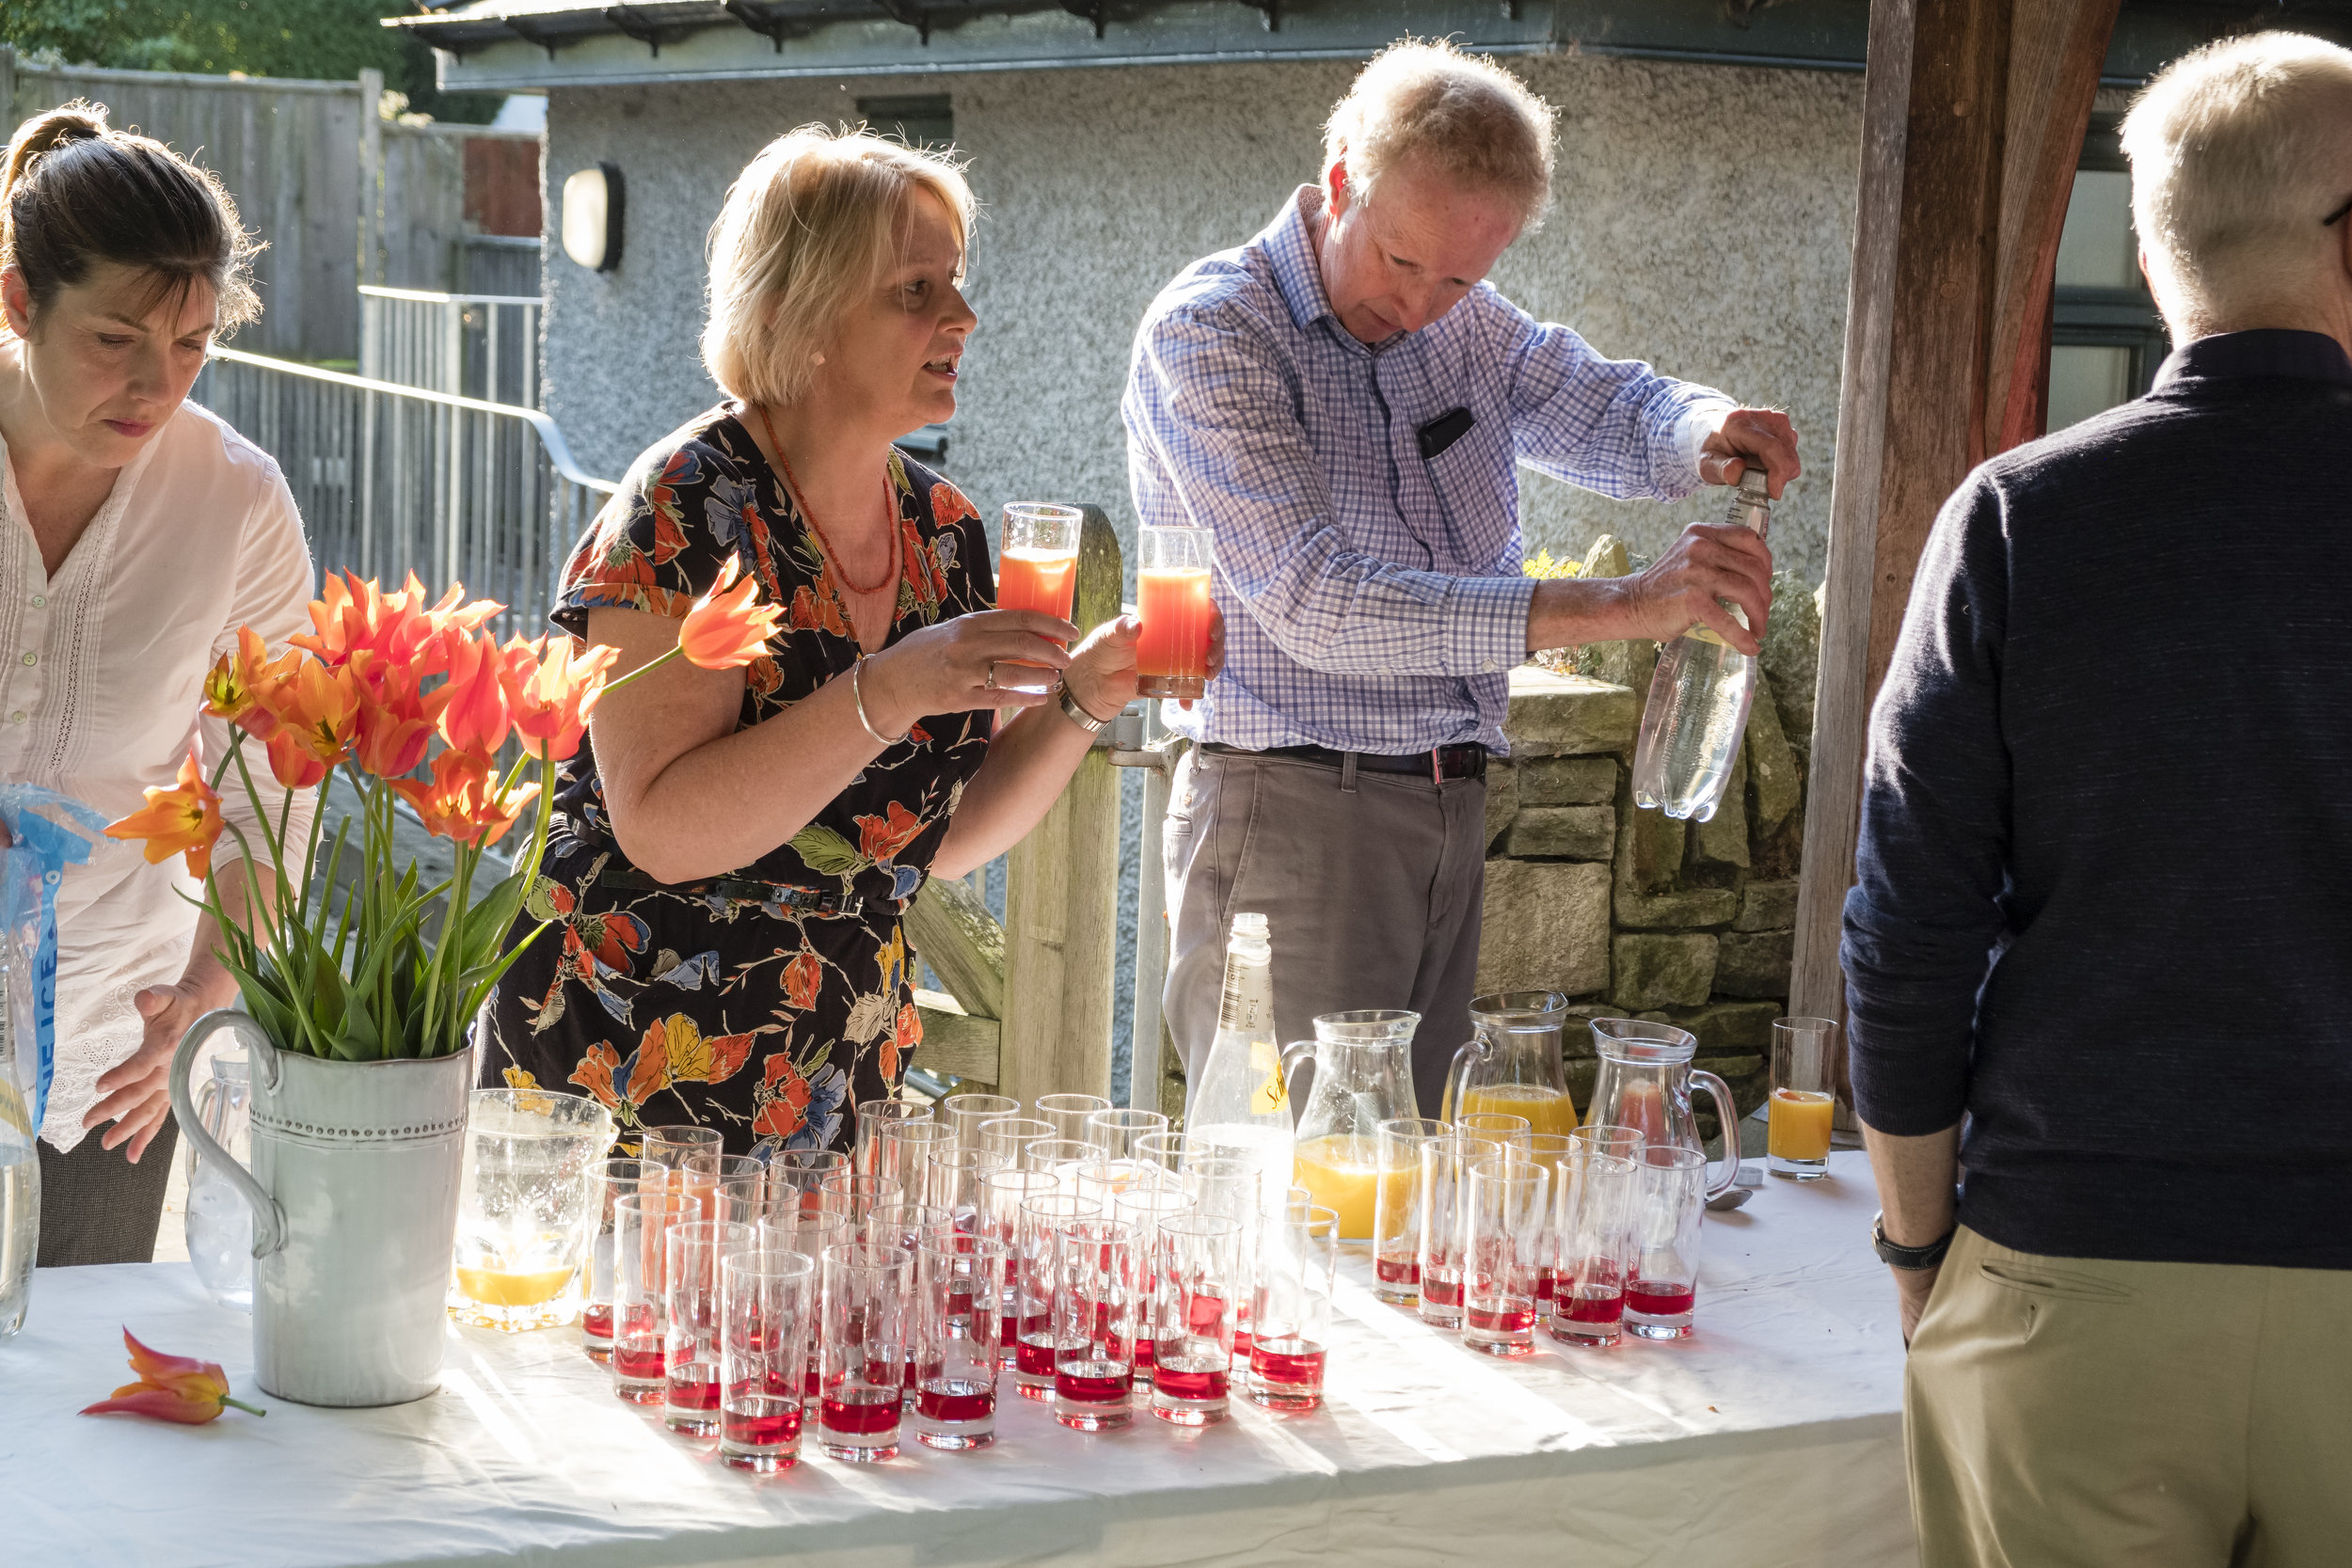 Presteigne Food and Flowers Festival